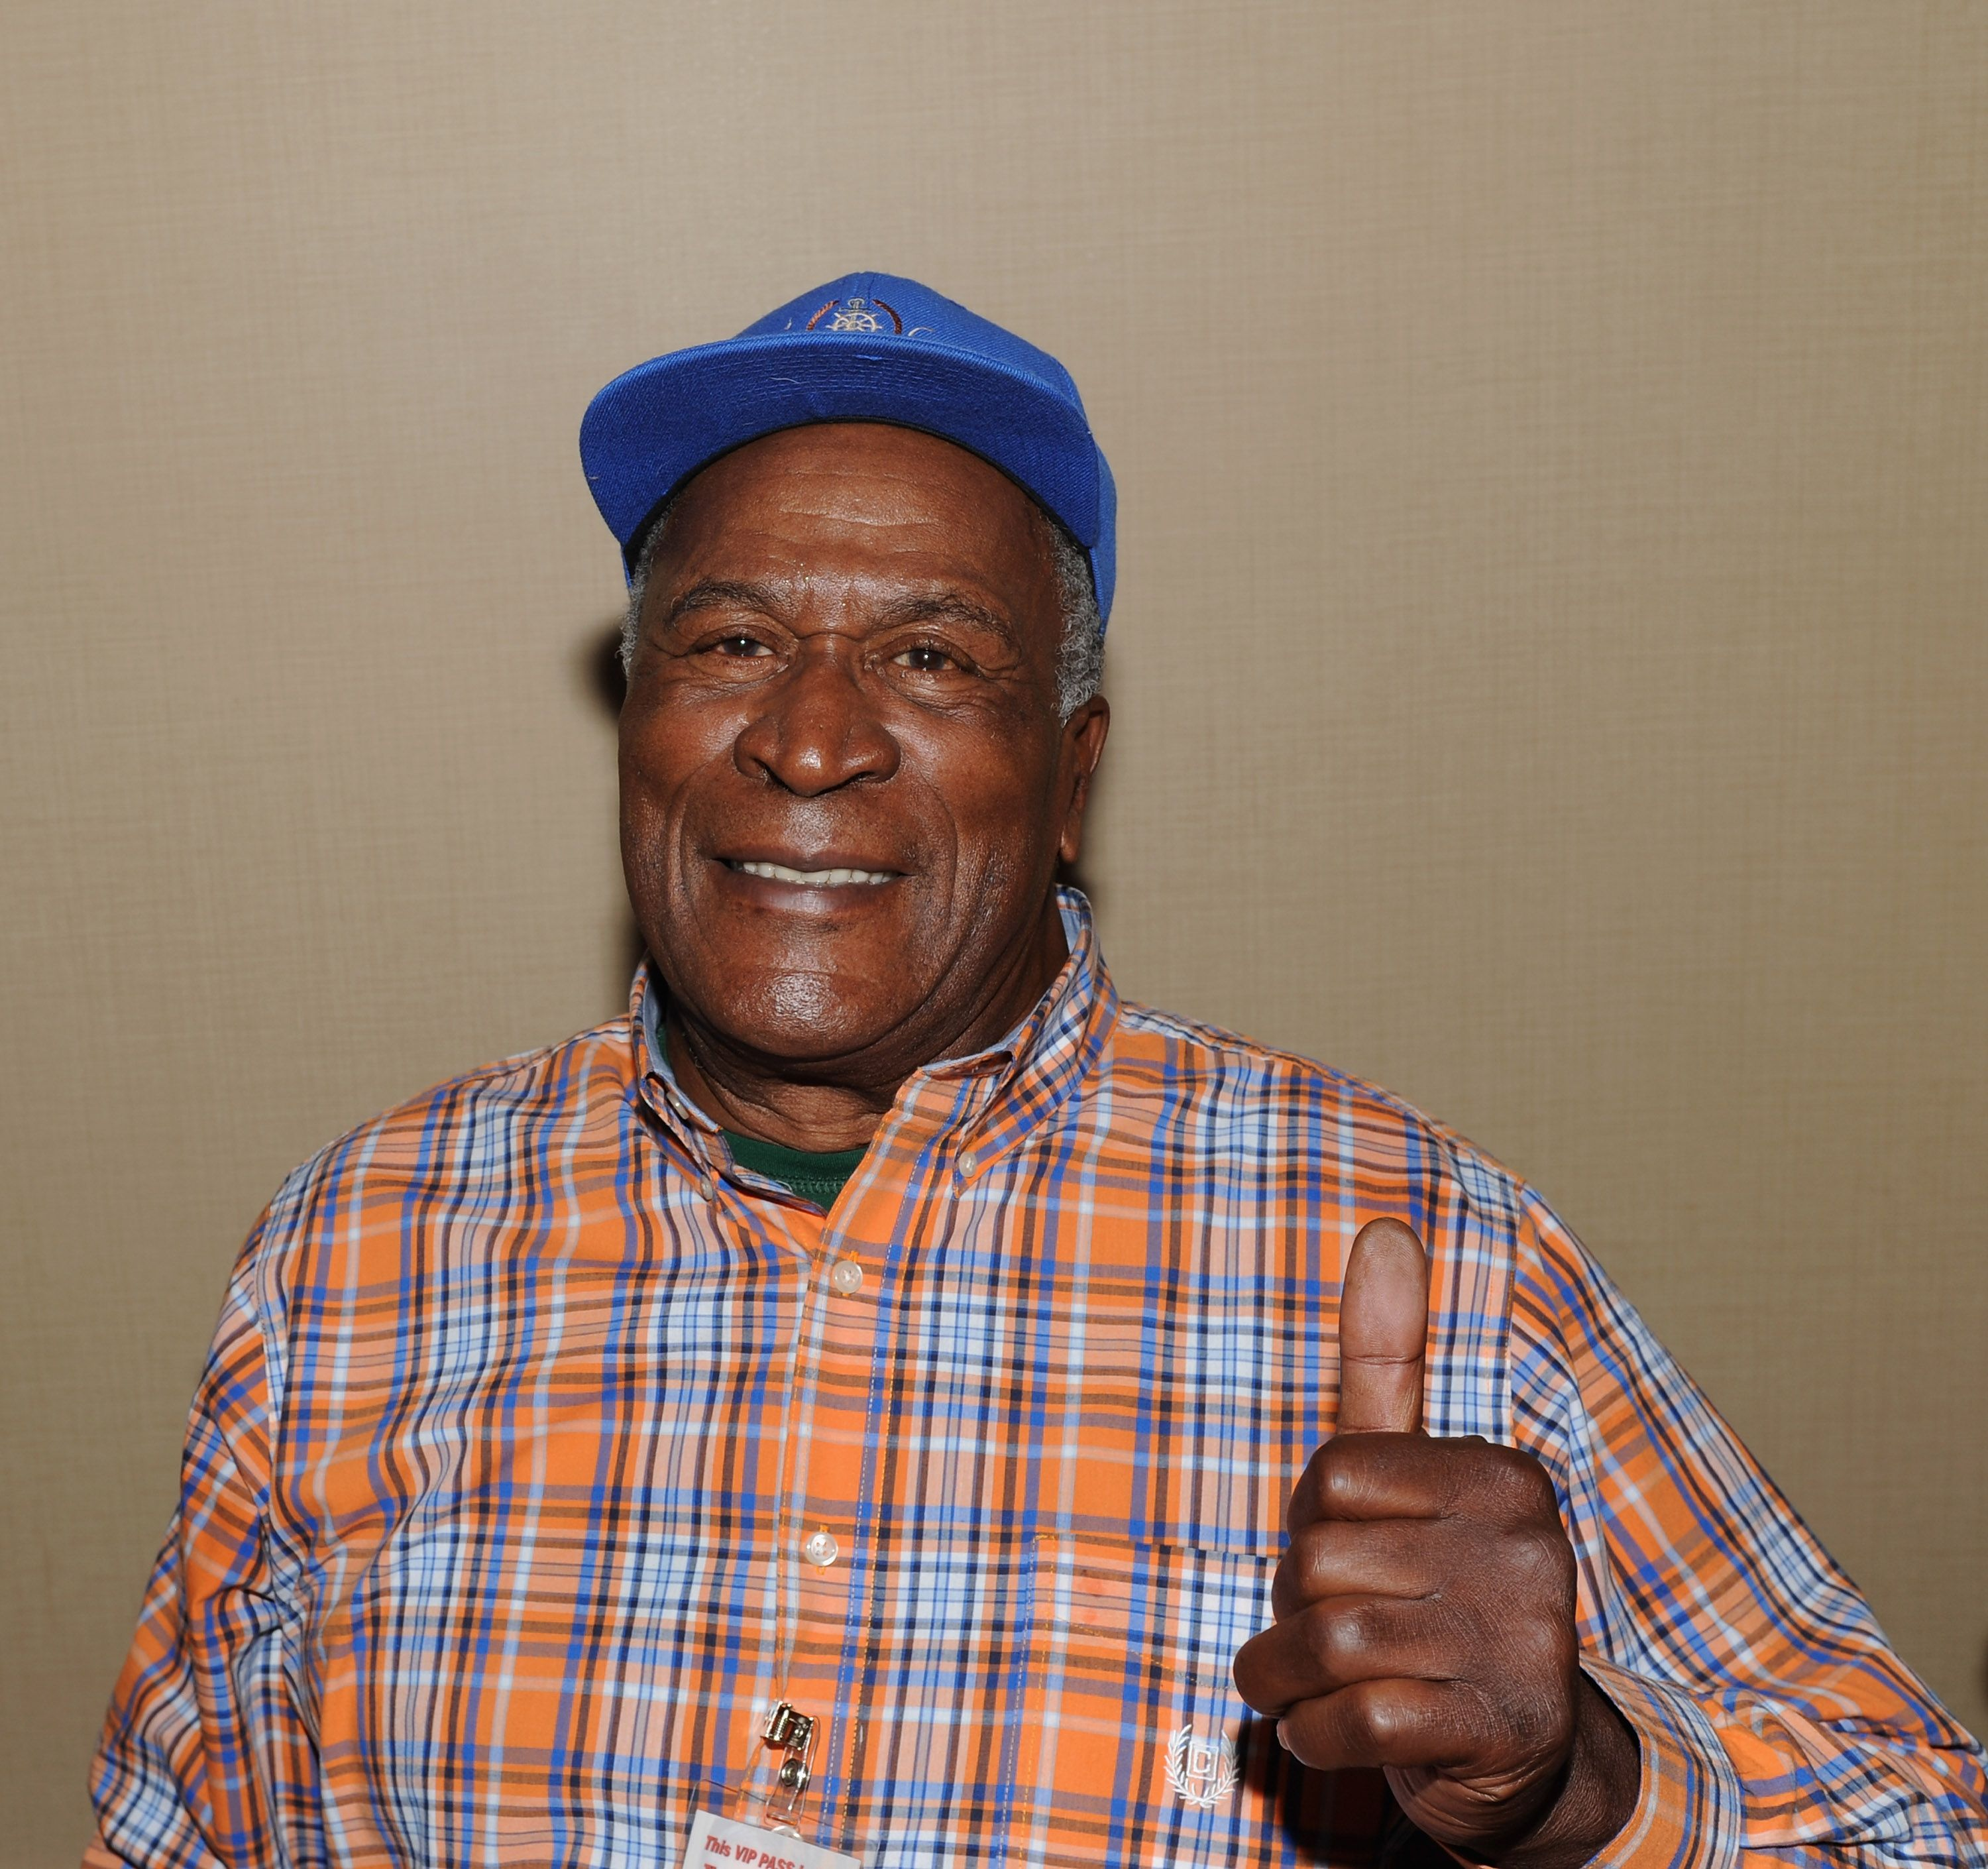 John Amos at Day 1 of the Chiller Theatre Expo at Sheraton Parsippany Hotel on October 23, 2015 | Photo: Getty Images